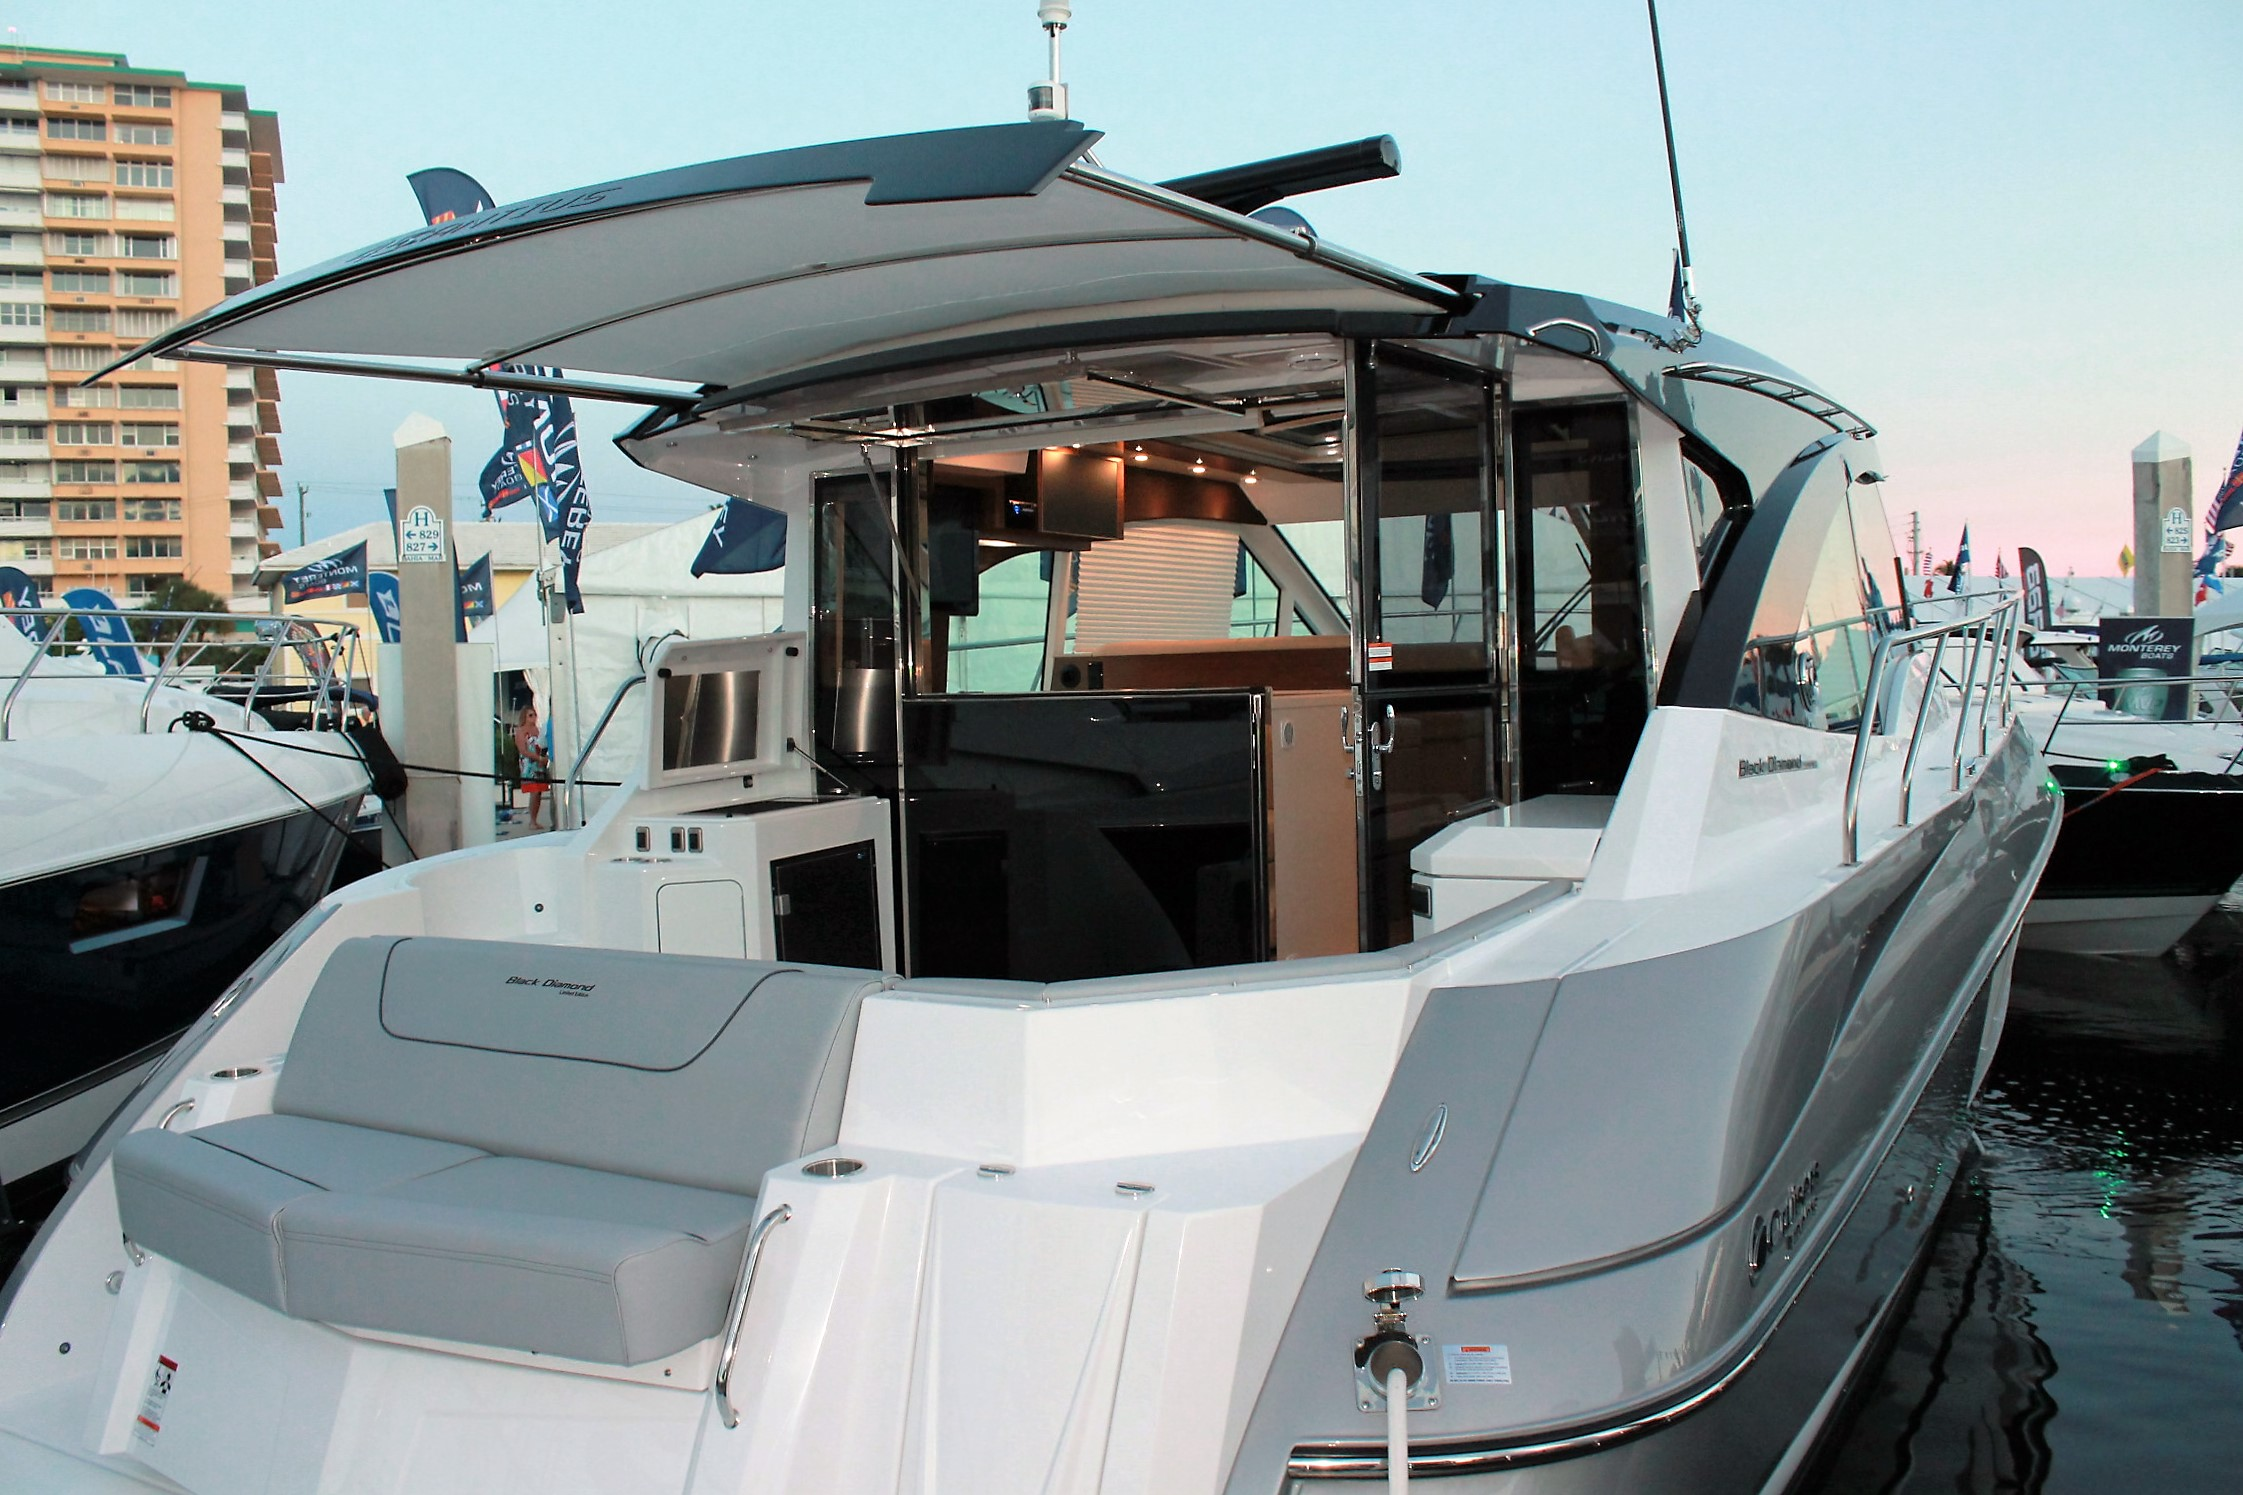 product cabin beneteau outboard motorboats cruiser cockpit prod cruisers with person enclosed max antares cabins